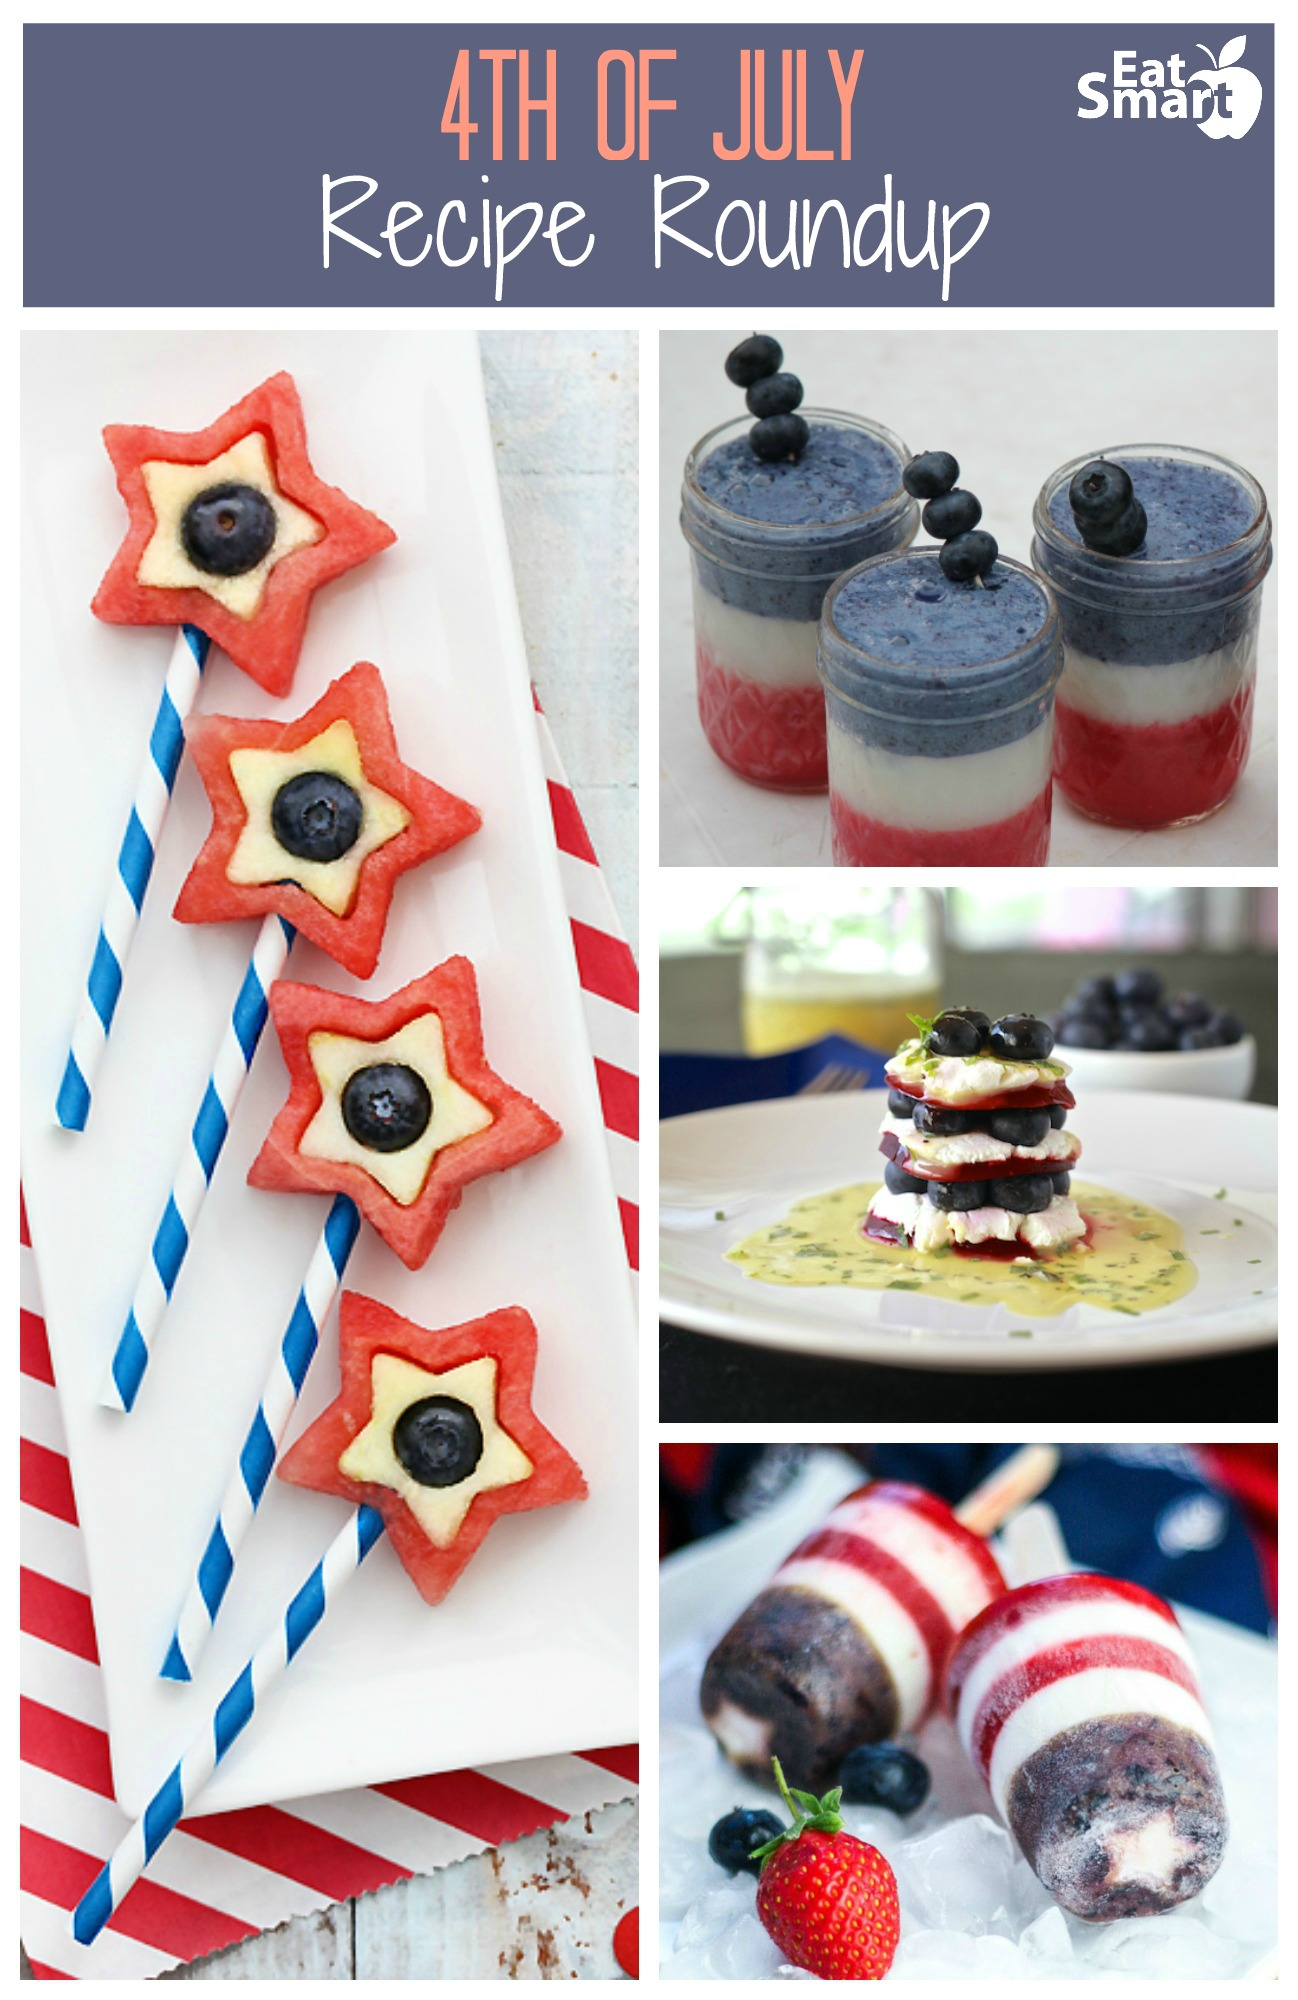 diy-red-white-blue-recipes-for-july-4th-vertical-2